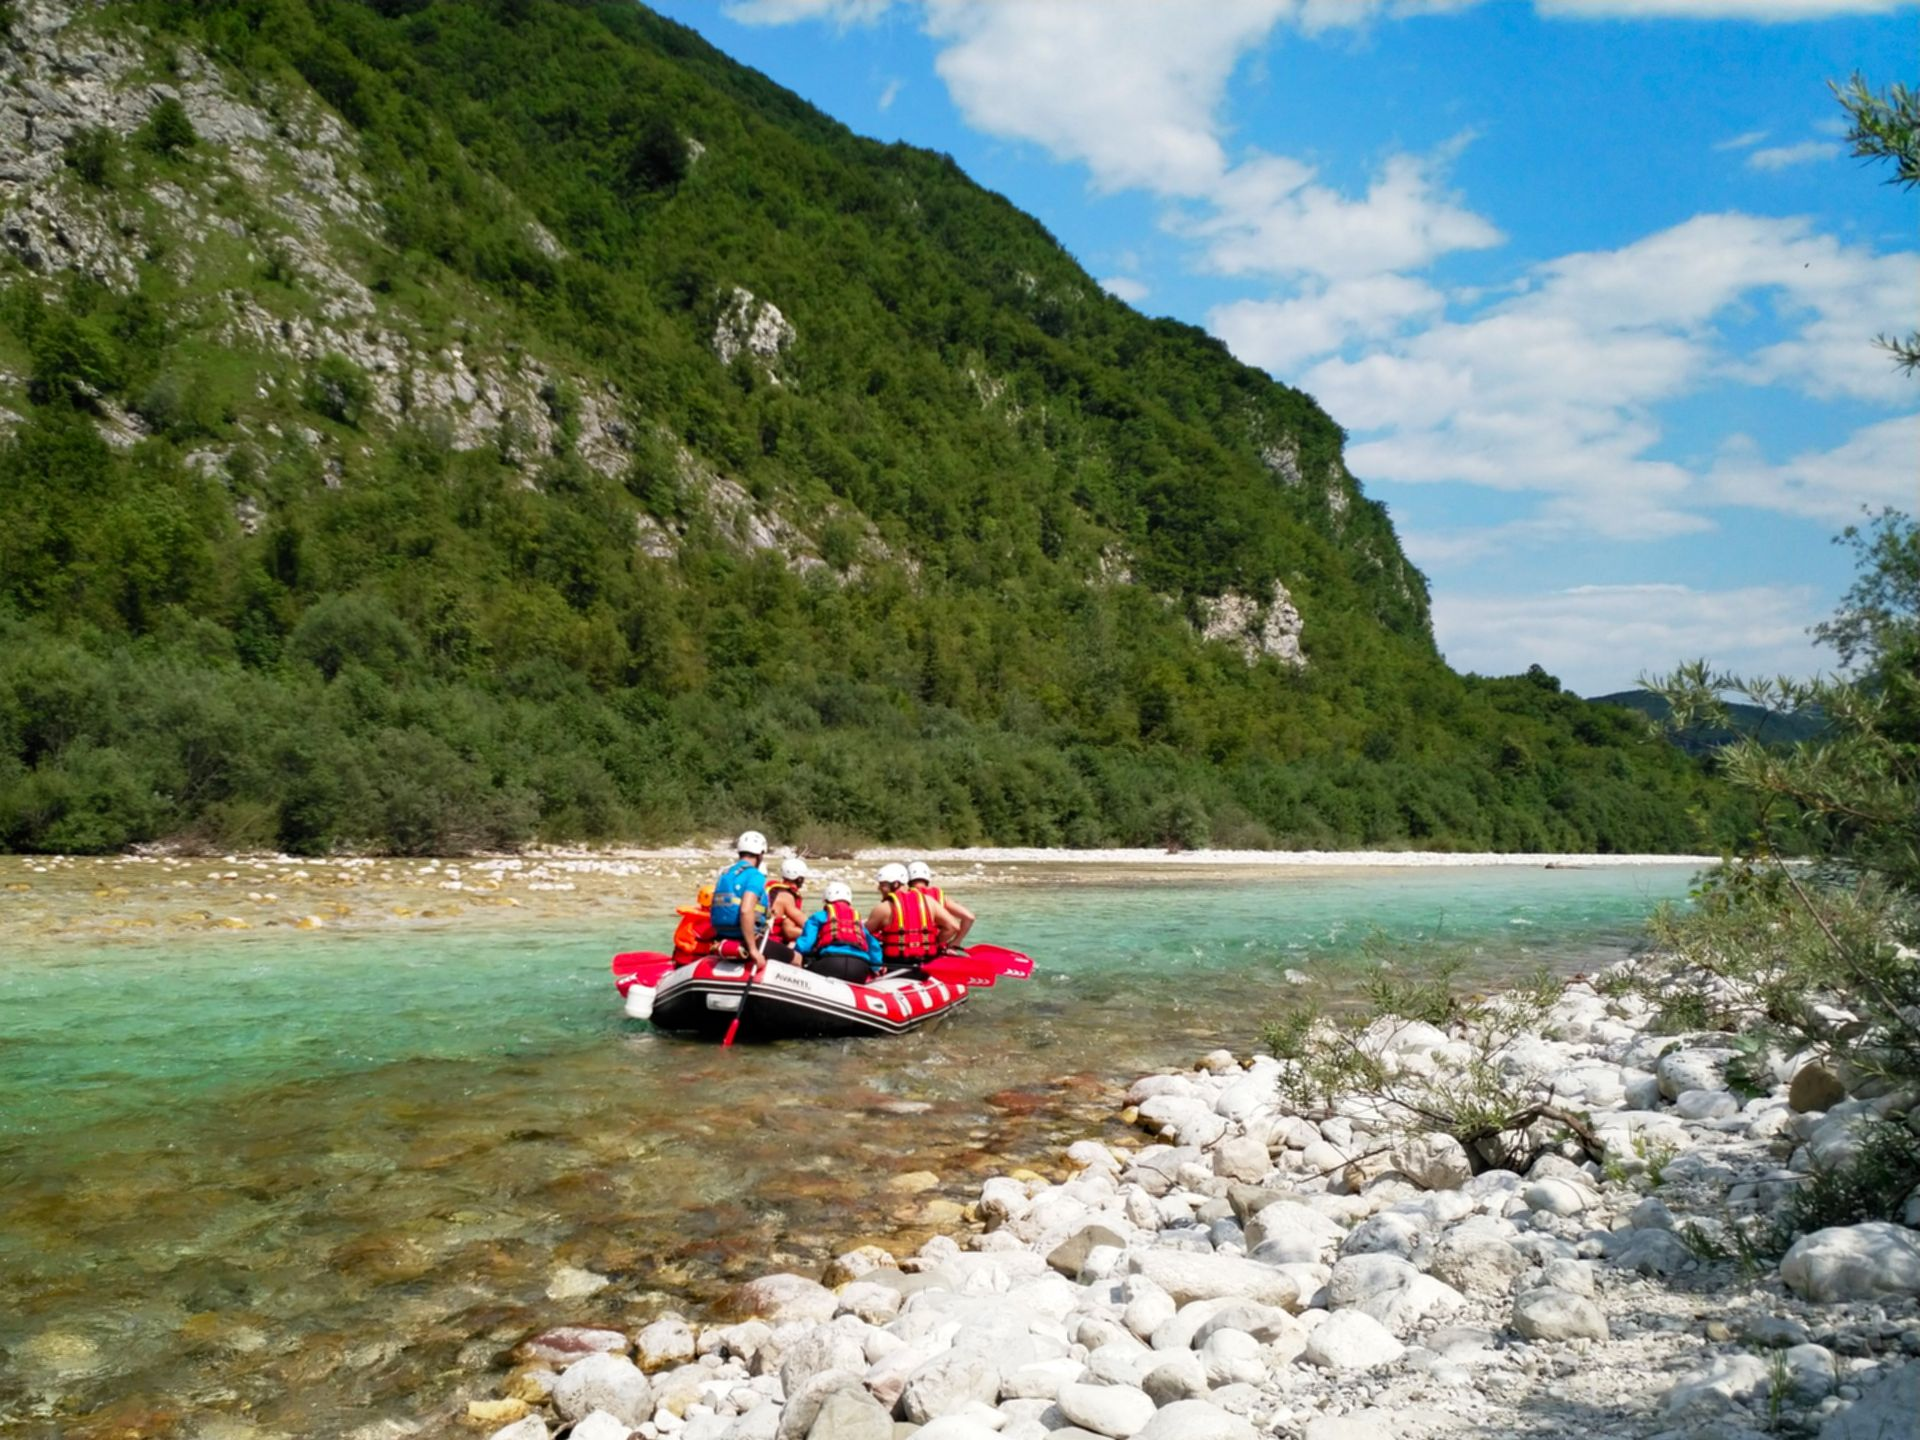 Family Rafting on Soca River Bovec, Triglav National Park, Slovenia #634fe5b7-69cb-4a36-ae80-7c668f3f45d1